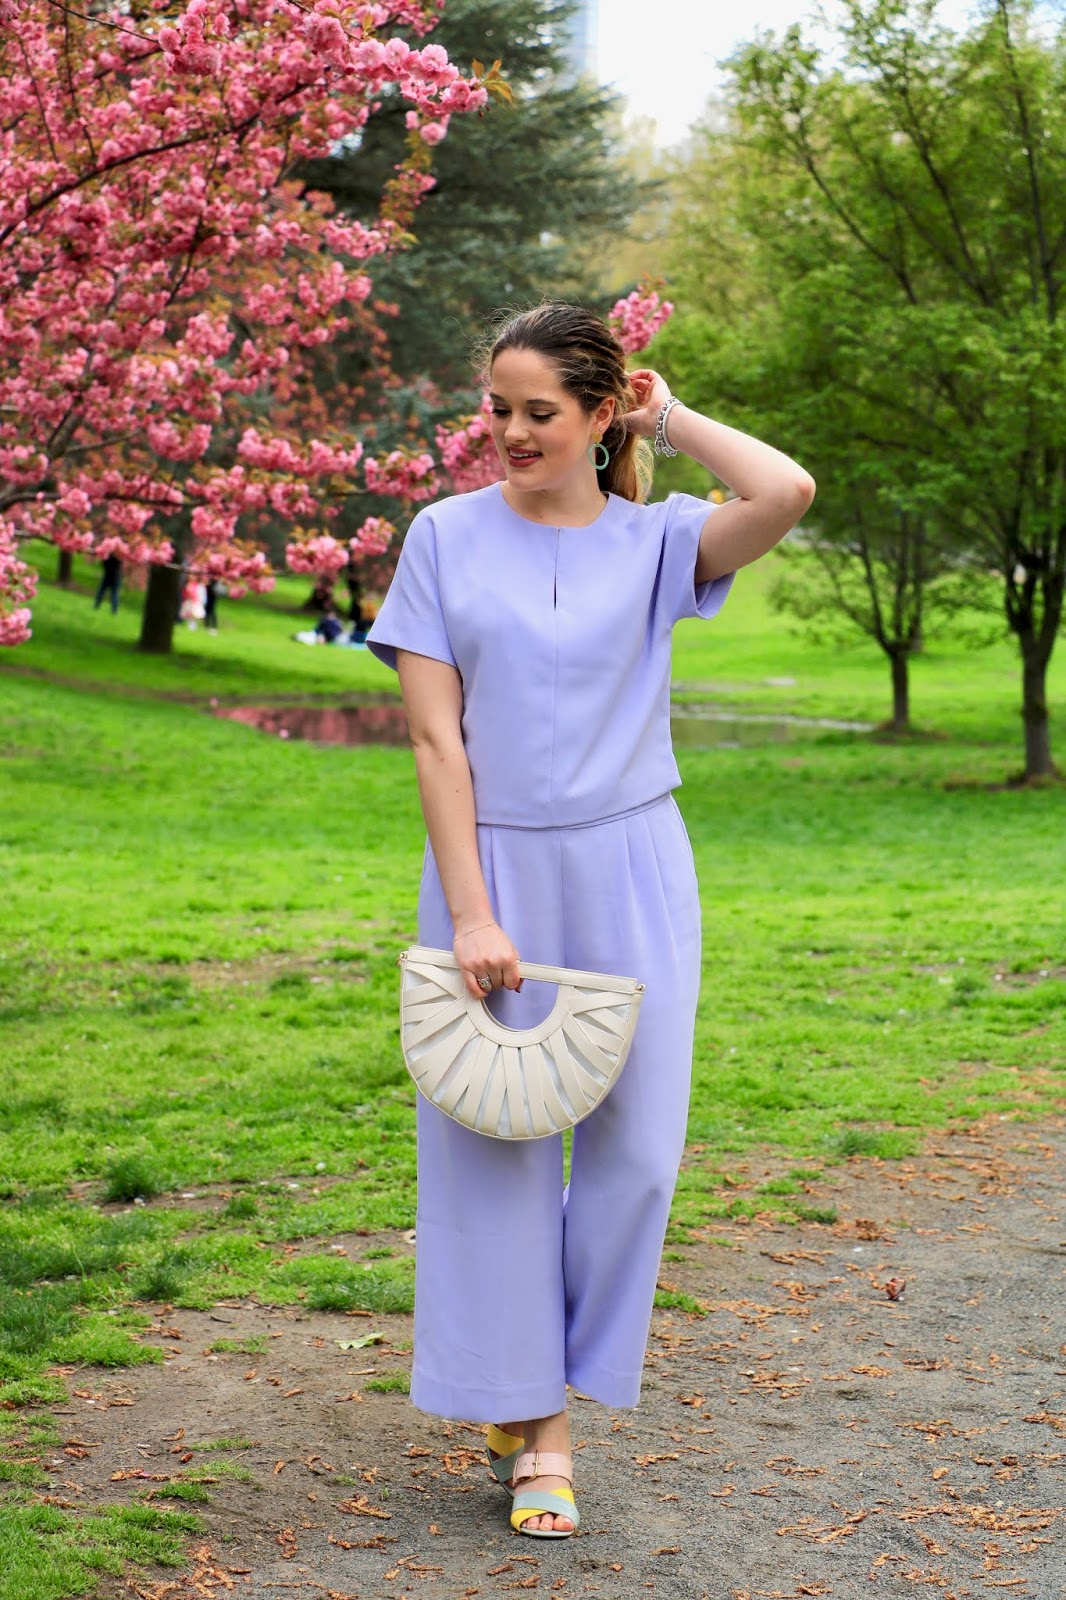 Nyc fashion blogger Kathleen Harper's 2019 spring street style